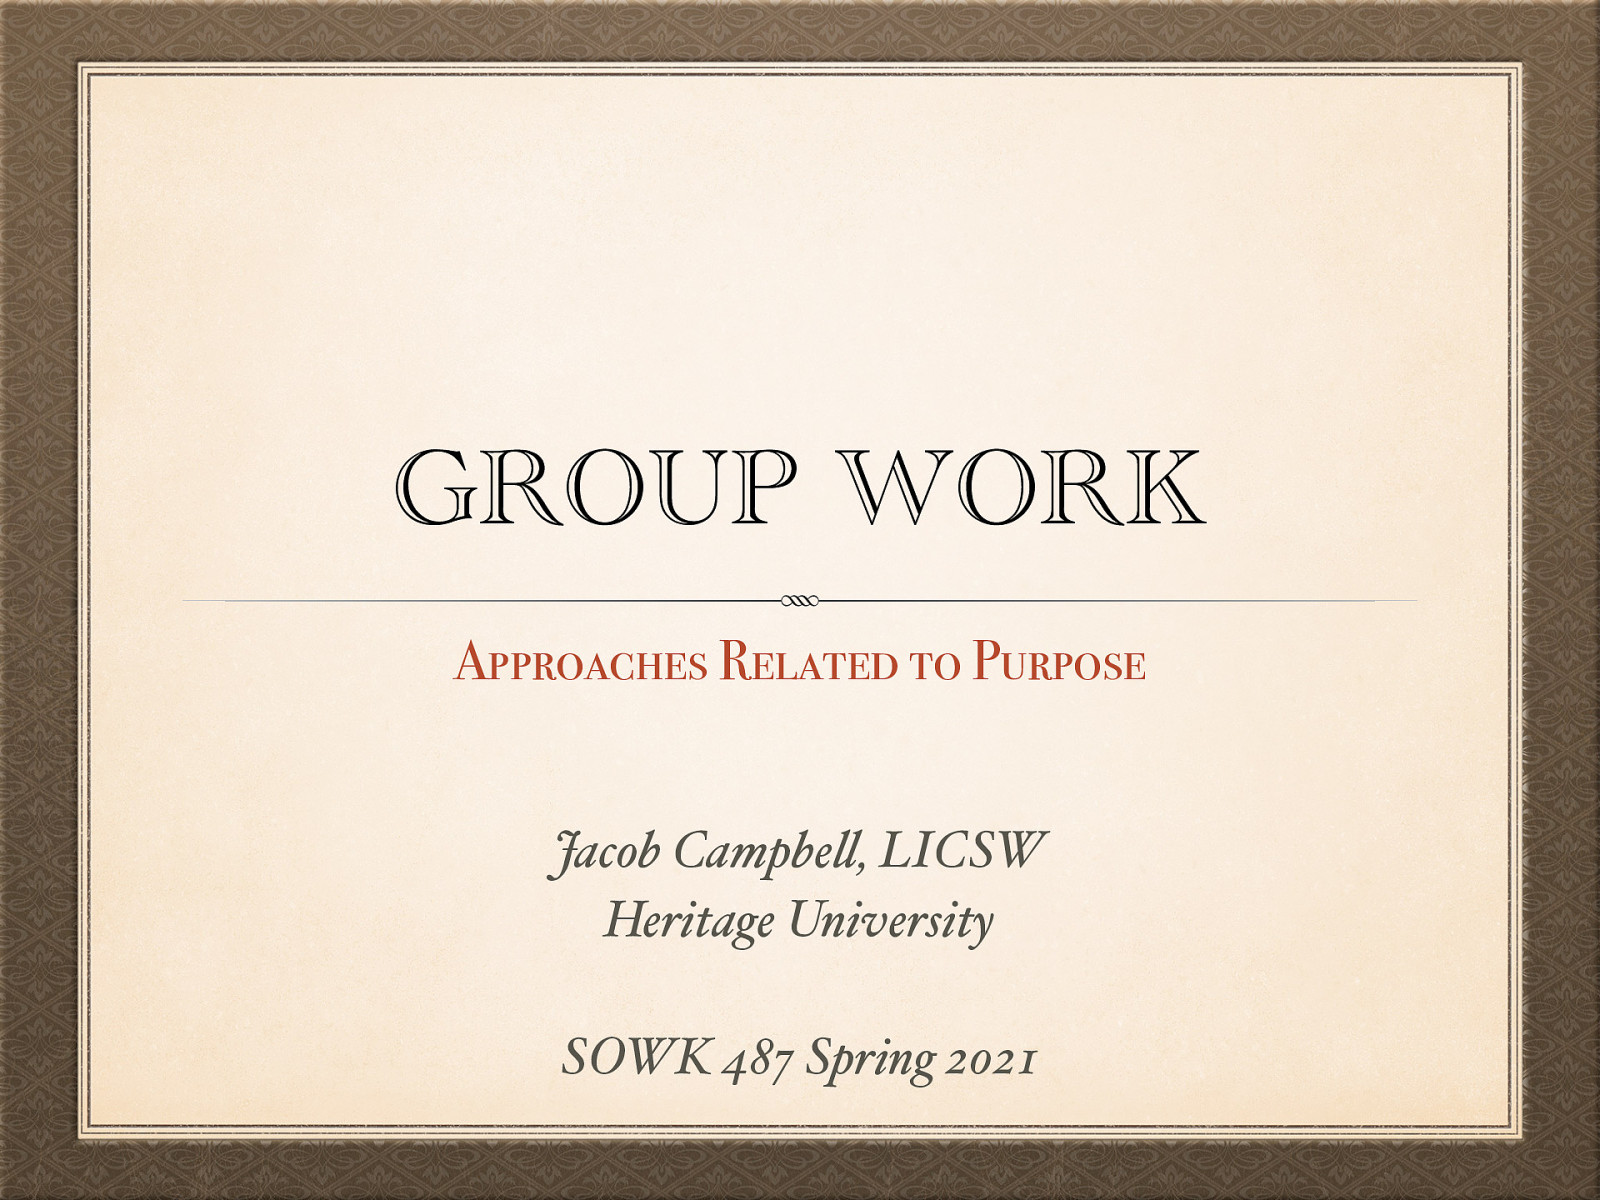 SOWK 487 - Week 08 - Group Work Approaches Related to Purpose